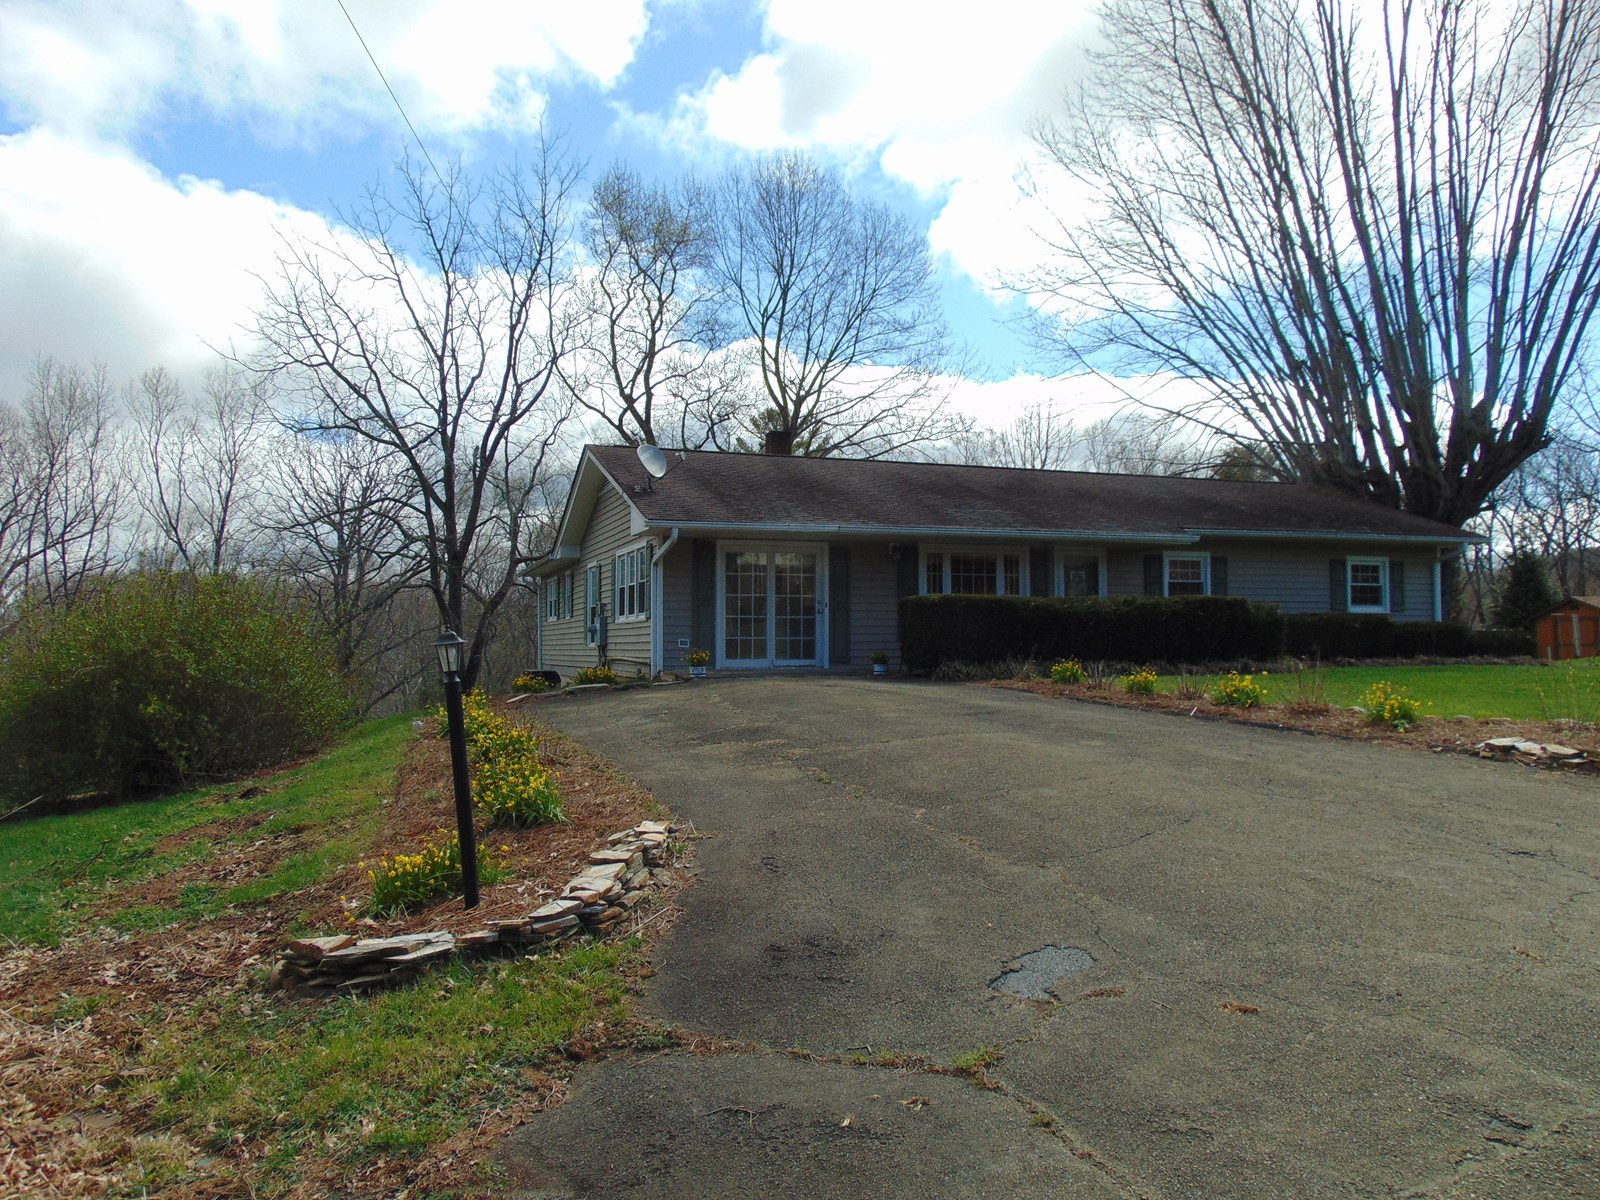 Home for Sale Close to Town of Sparta Little River Frontage